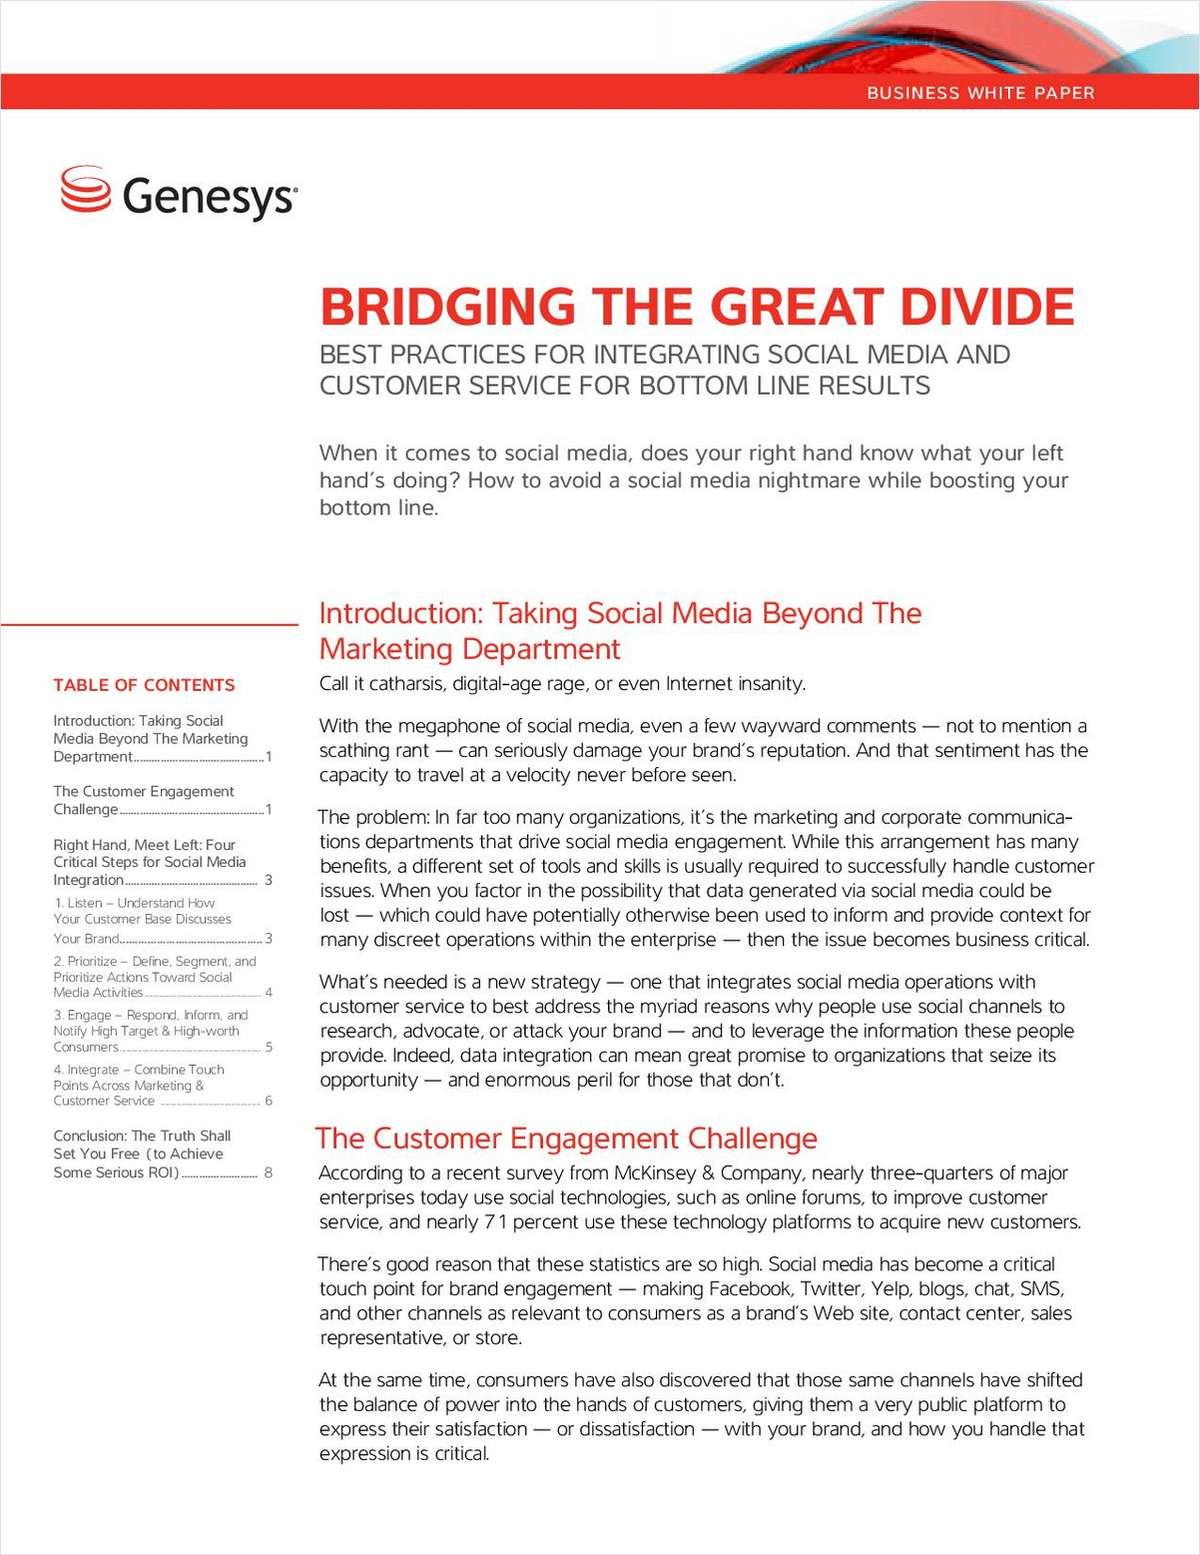 Best Practices for Integrating Social Media and Customer Service for Bottom Line Results